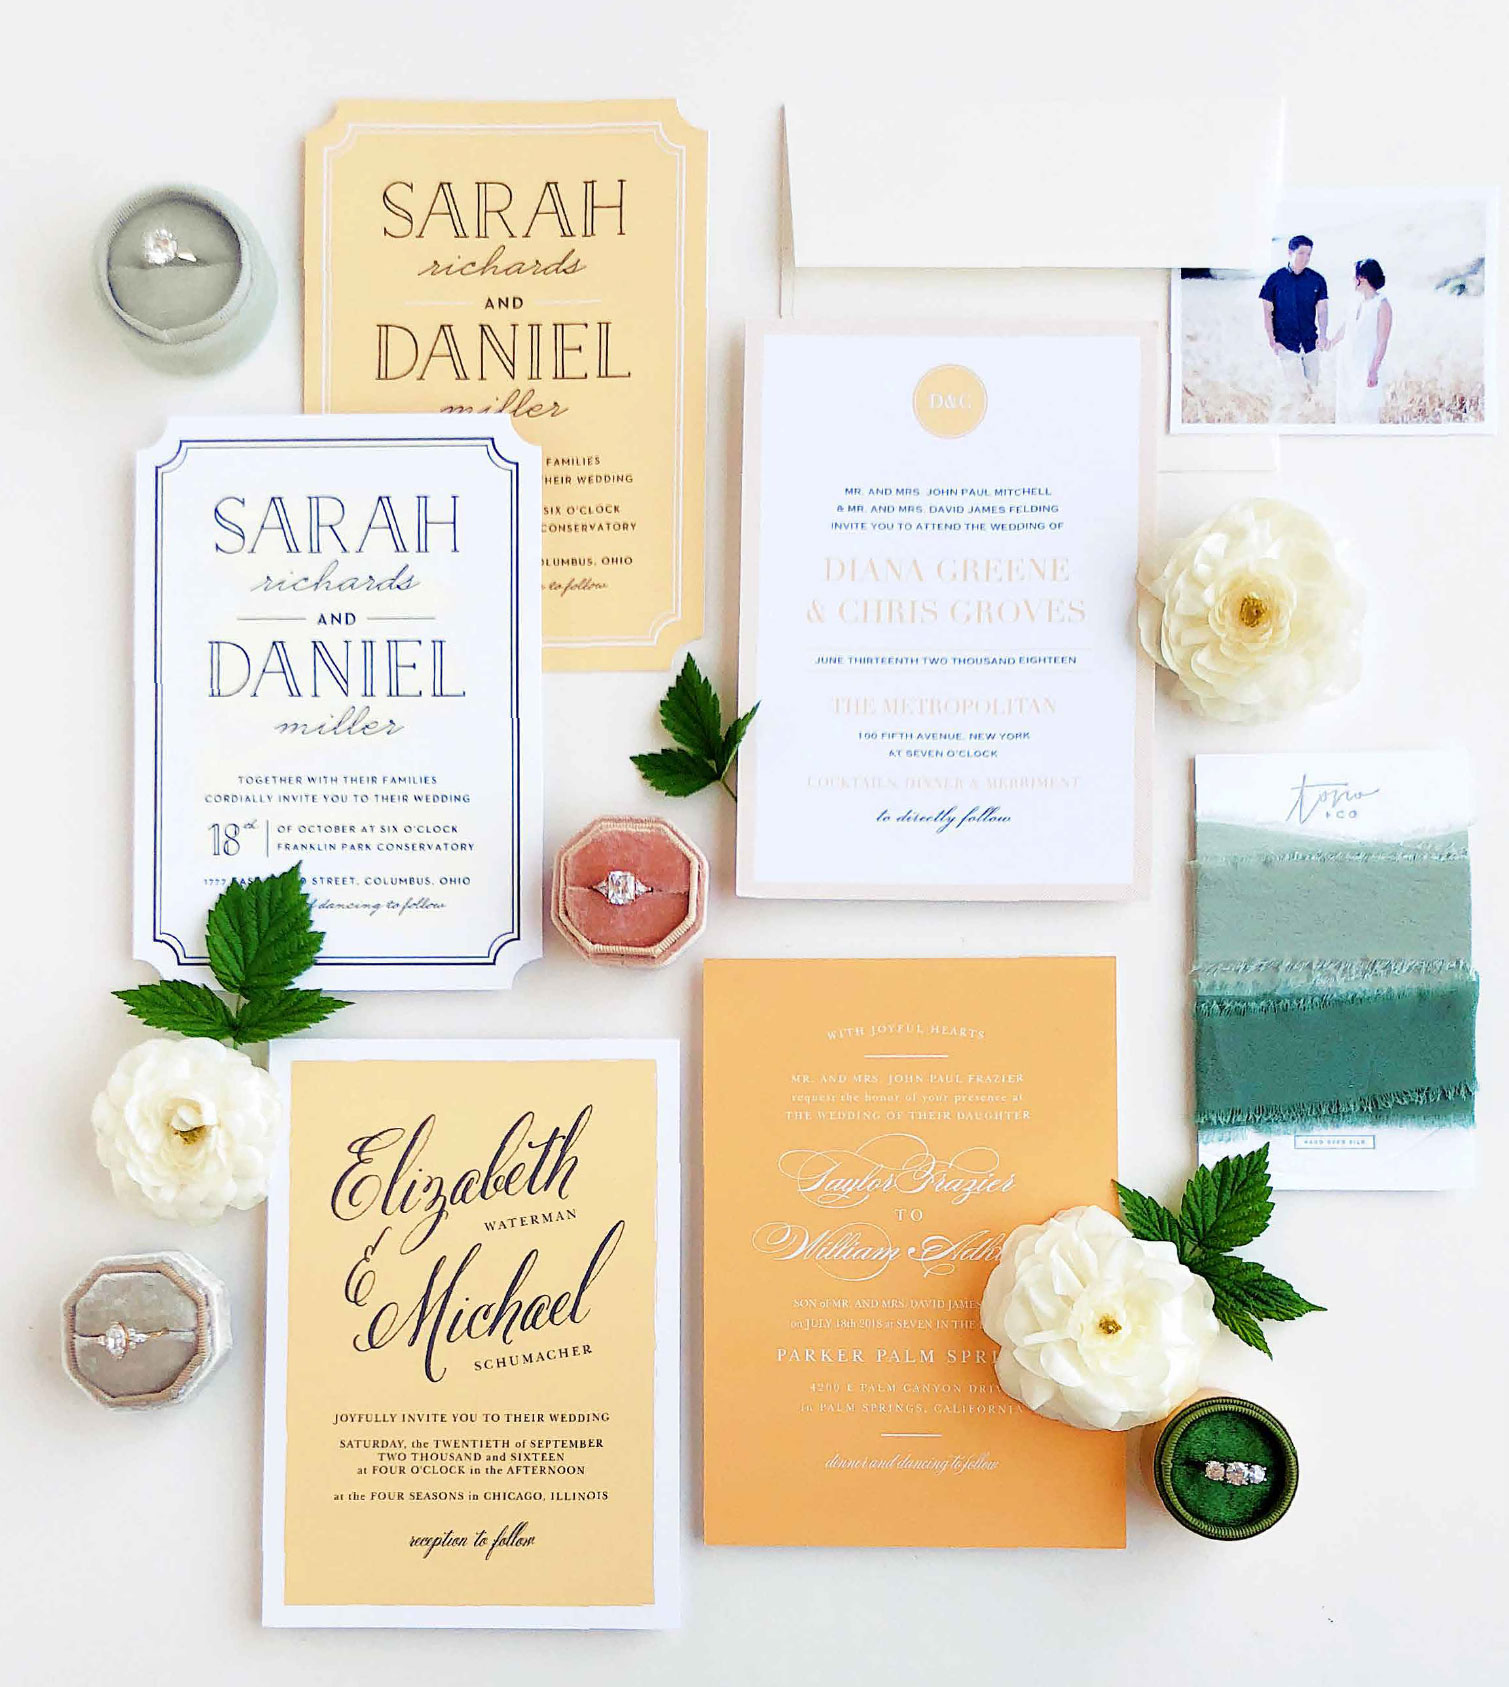 Go ahead, pick a color. Any color. With over 180 custom color options, including 10 shades of yellow, it's no wonder why they call us the Truly Custom Invitation Company.